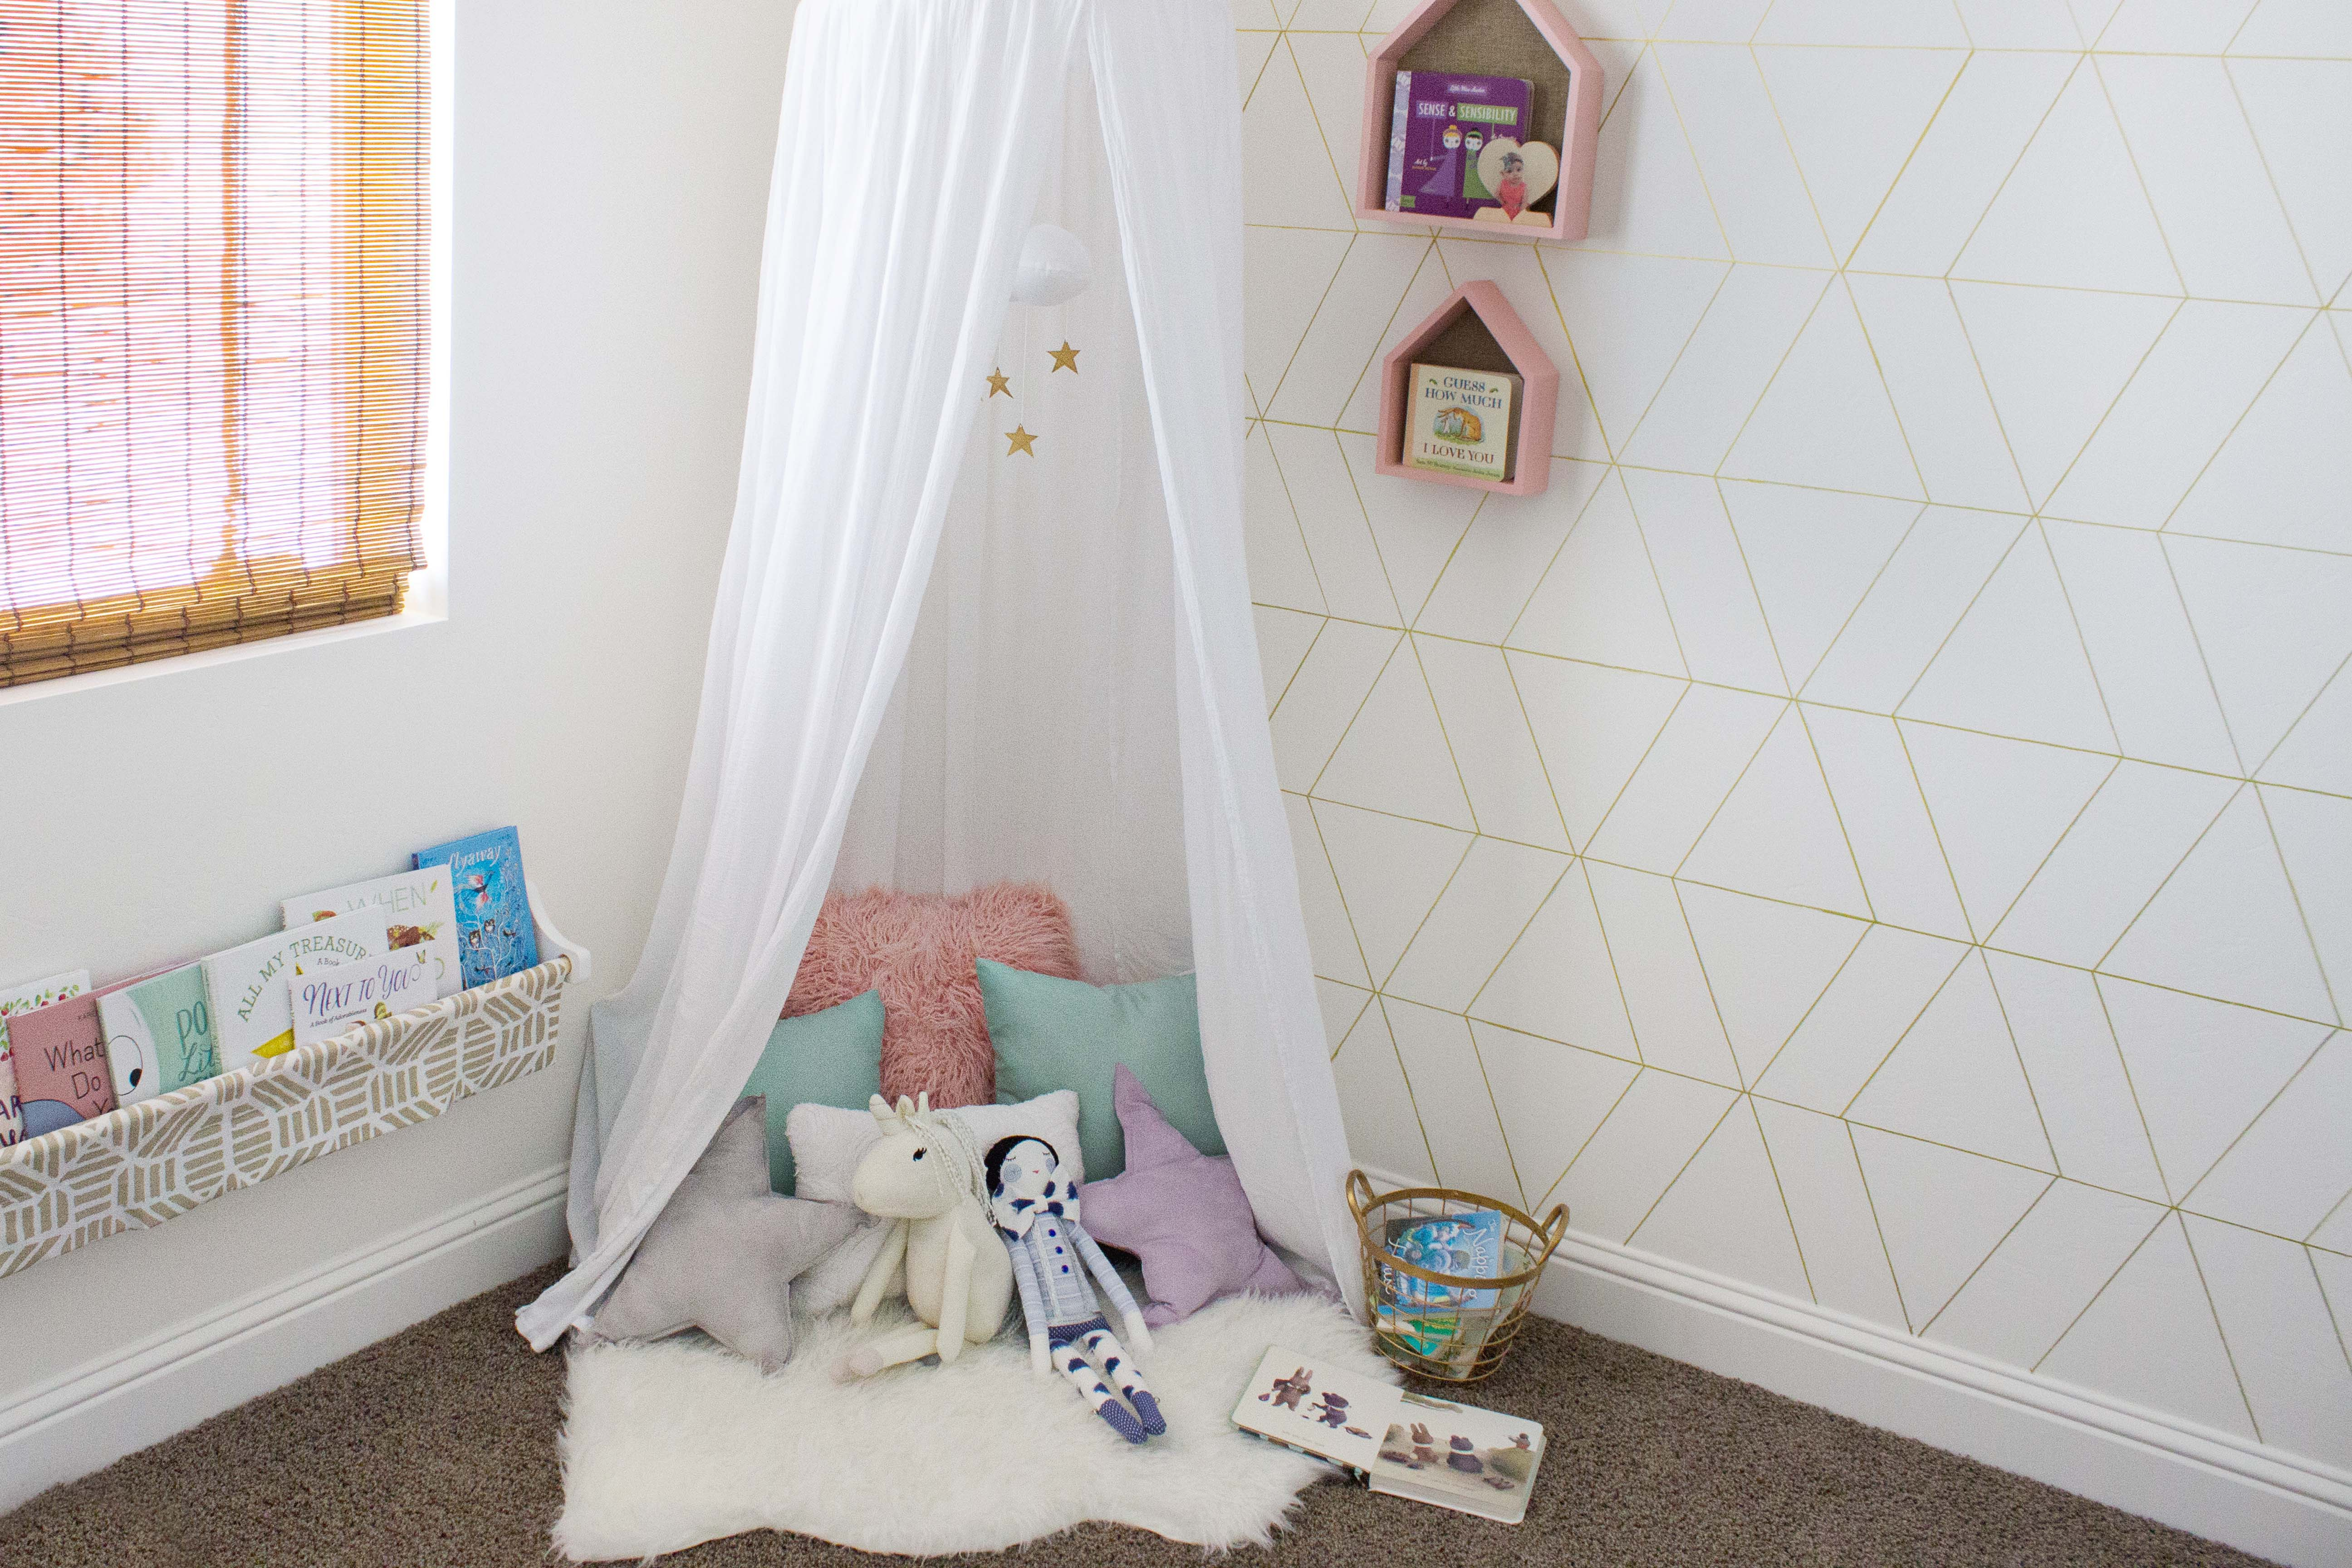 Later on I hope it will become a nook where she will look forward to spending saturday afternoons really delving into books just as I did as child. & Canopy Book Nook Reveal · Book Nerd Mommy